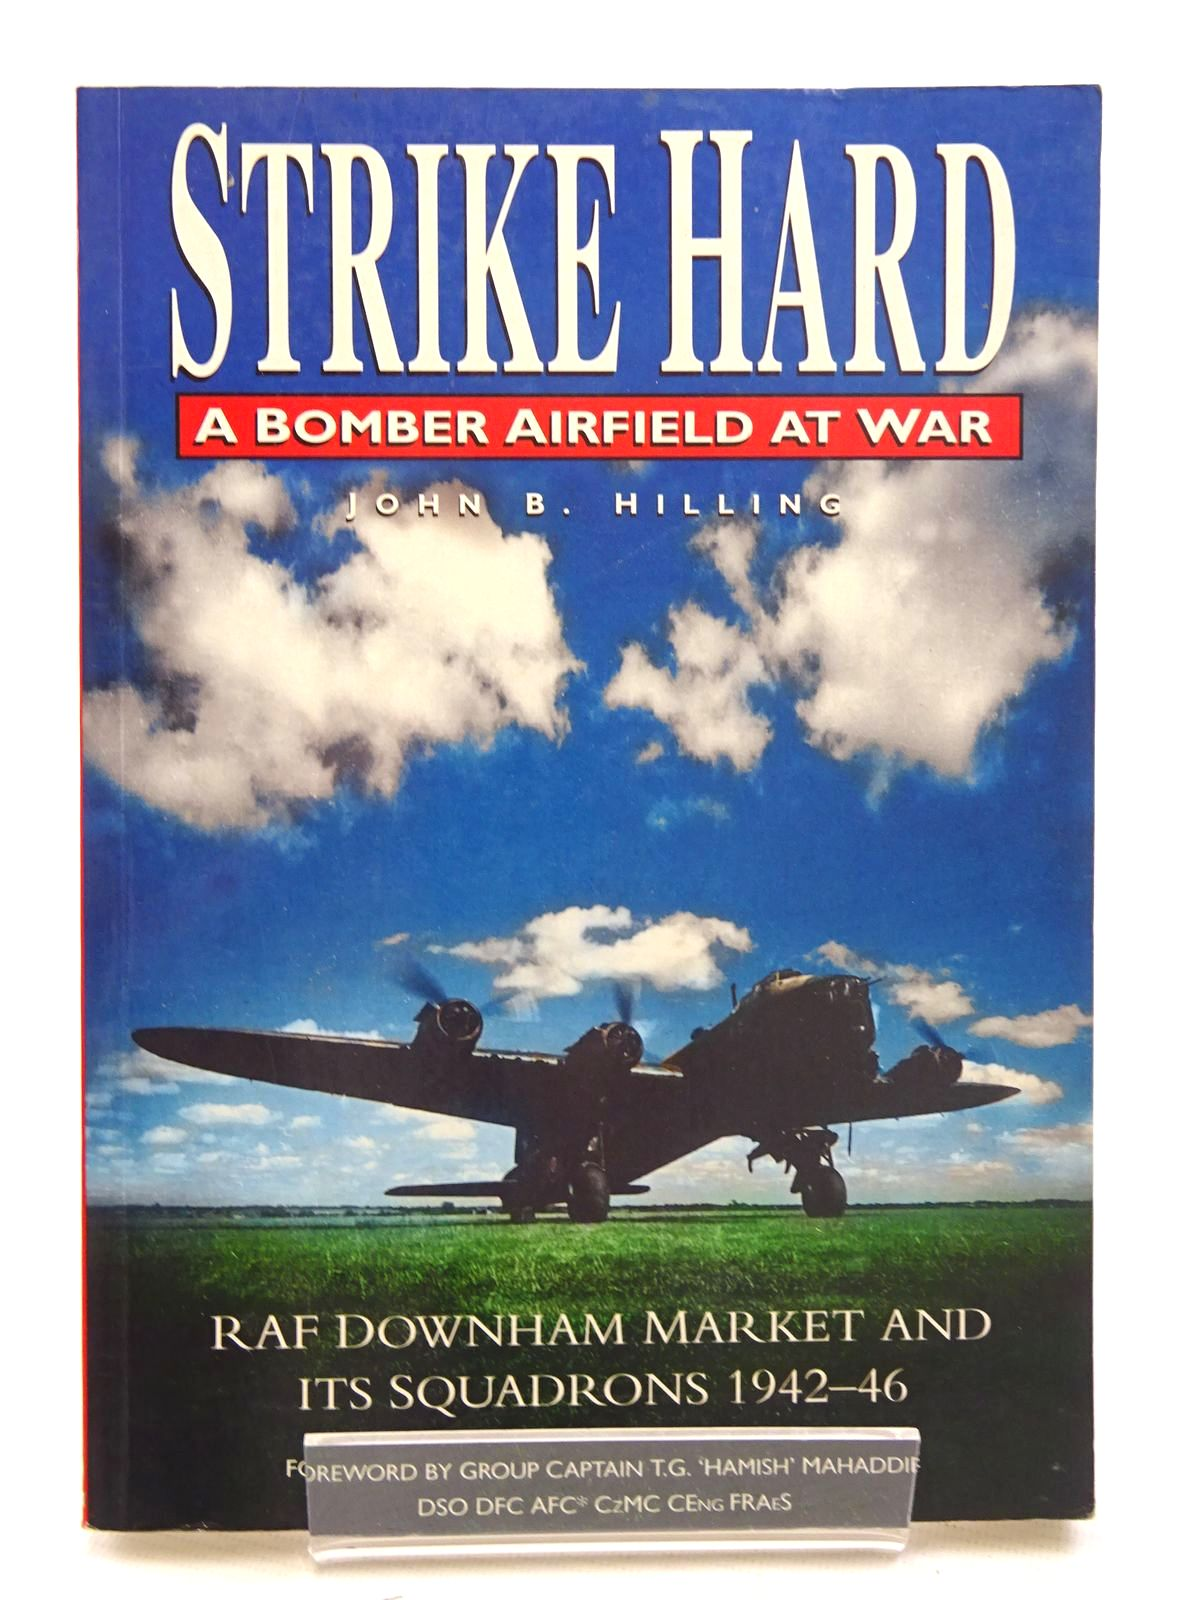 Photo of STRIKE HARD A BOMBER AIRFIELD AT WAR written by Hilling, John B. published by Sutton Publishing (STOCK CODE: 1610604)  for sale by Stella & Rose's Books